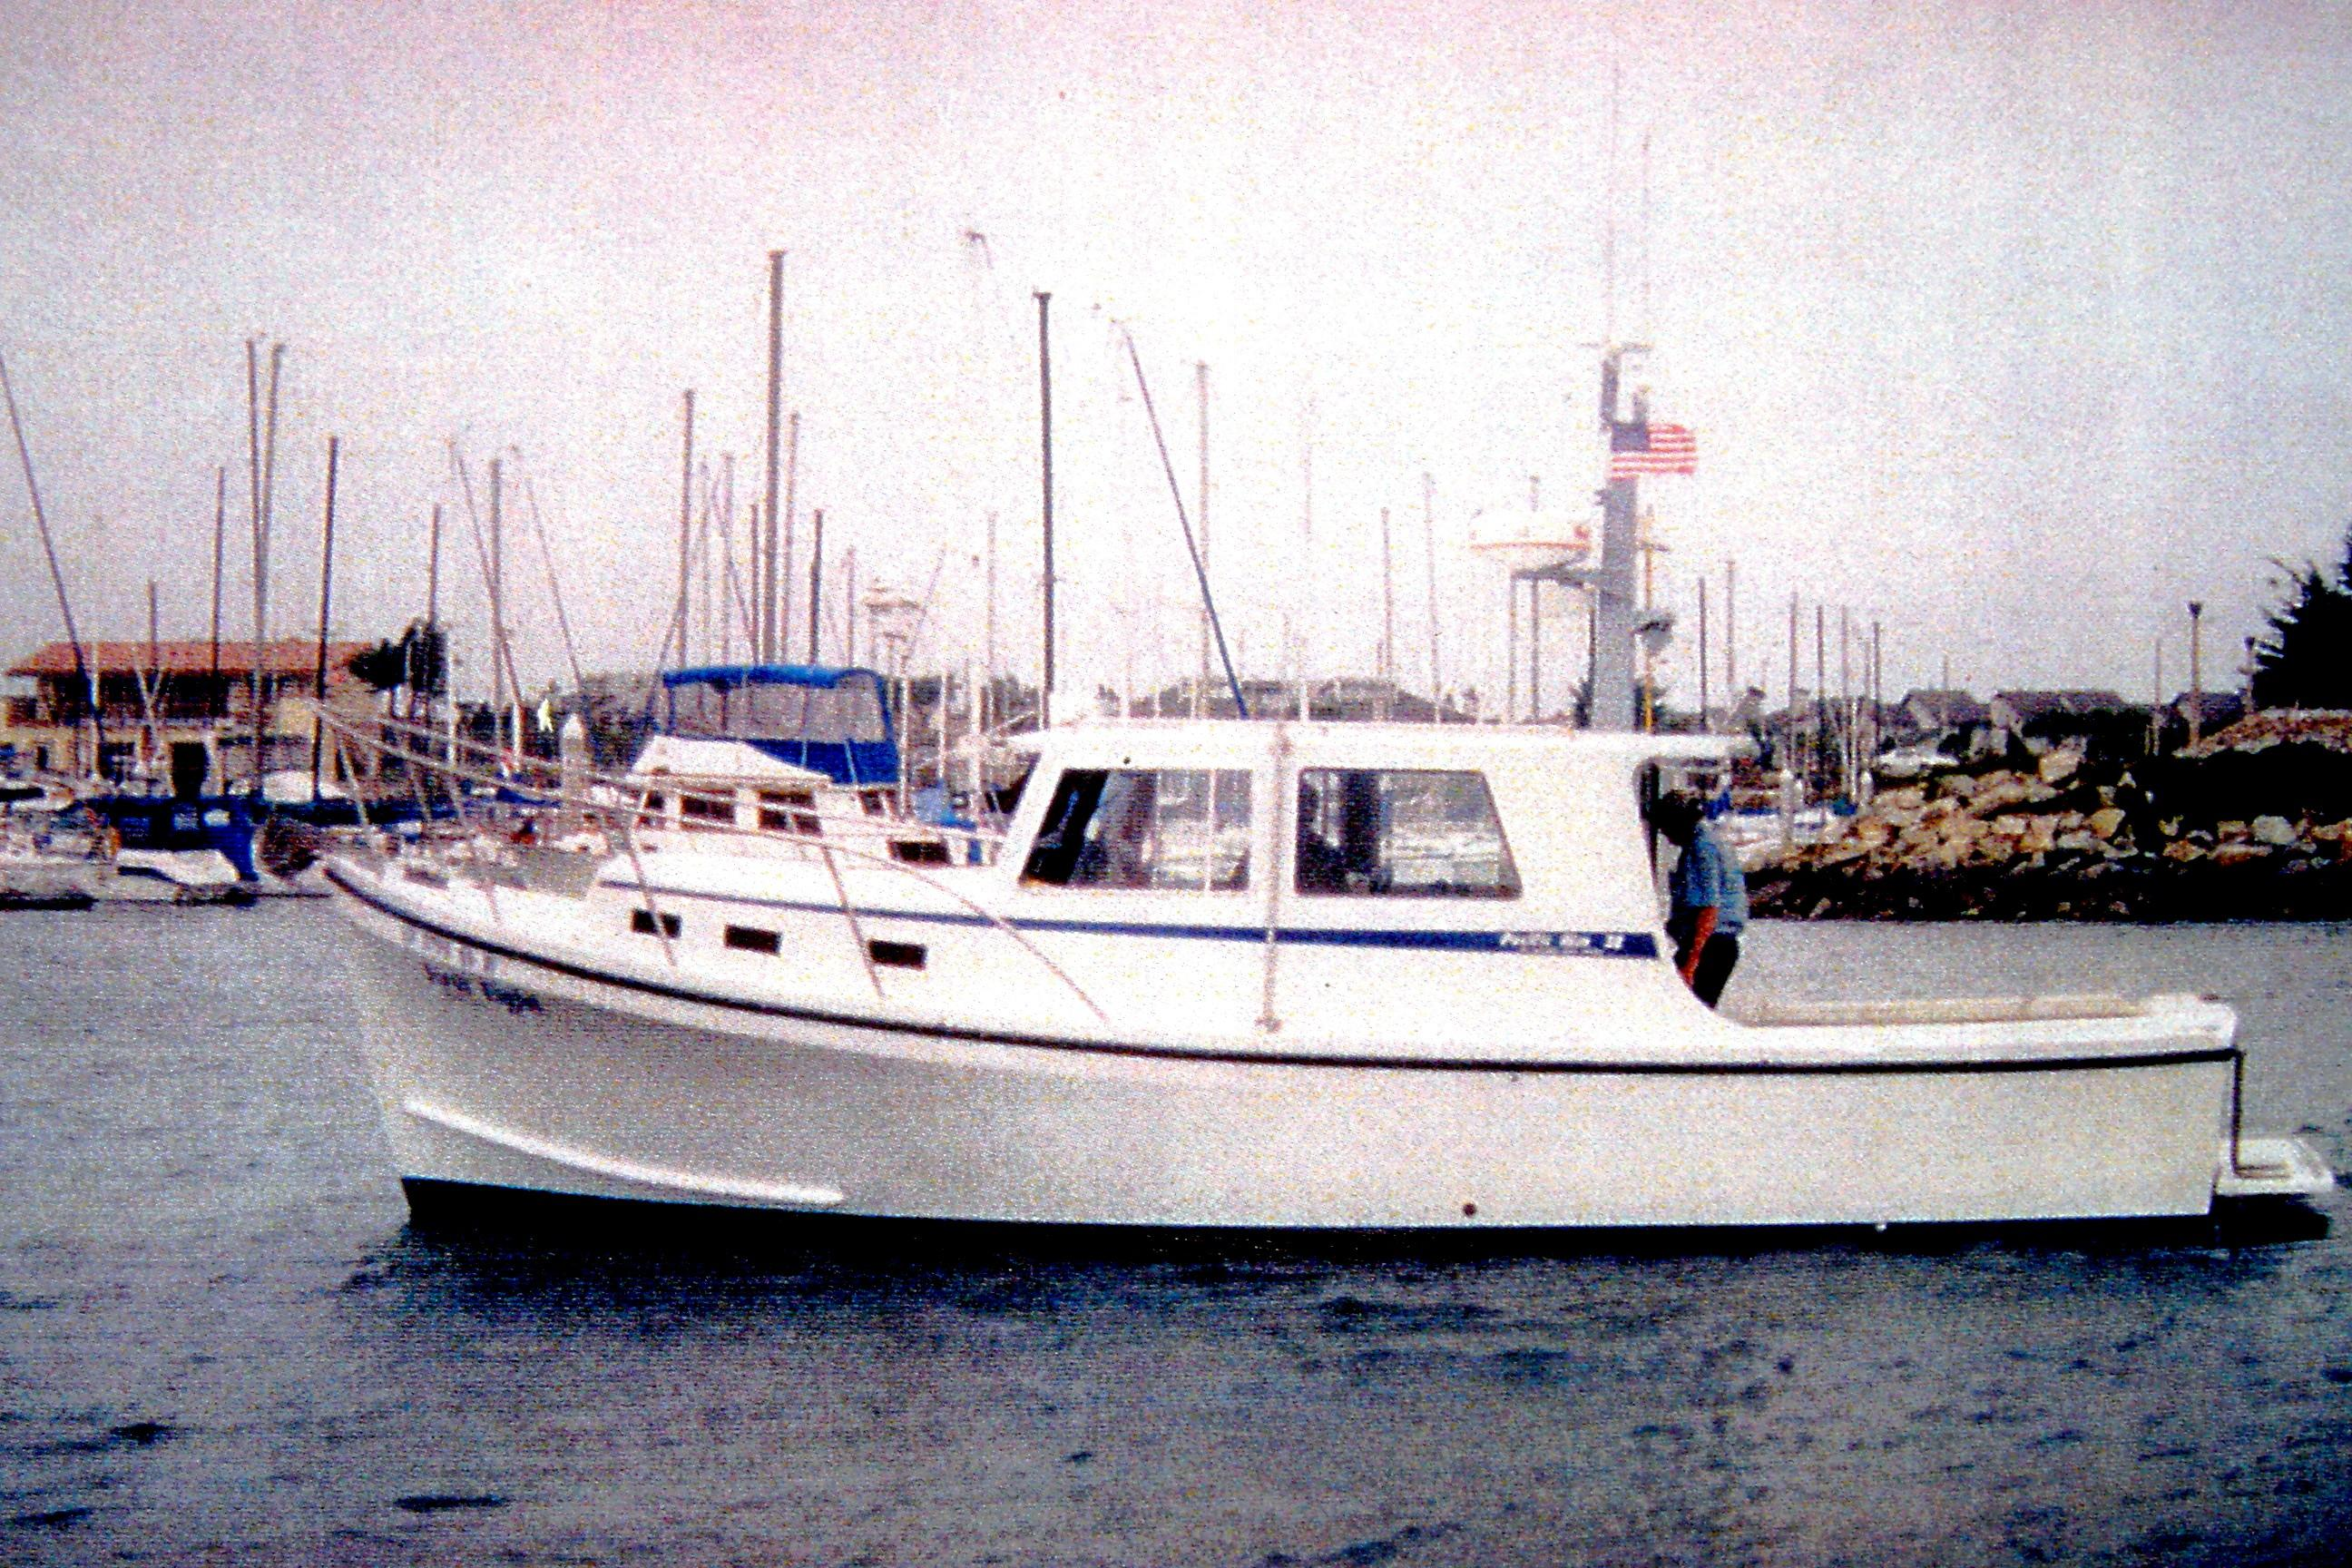 Cruiser For Sale Los Angeles Ca >> 32 Foot Boats for Sale in CA | Boat listings